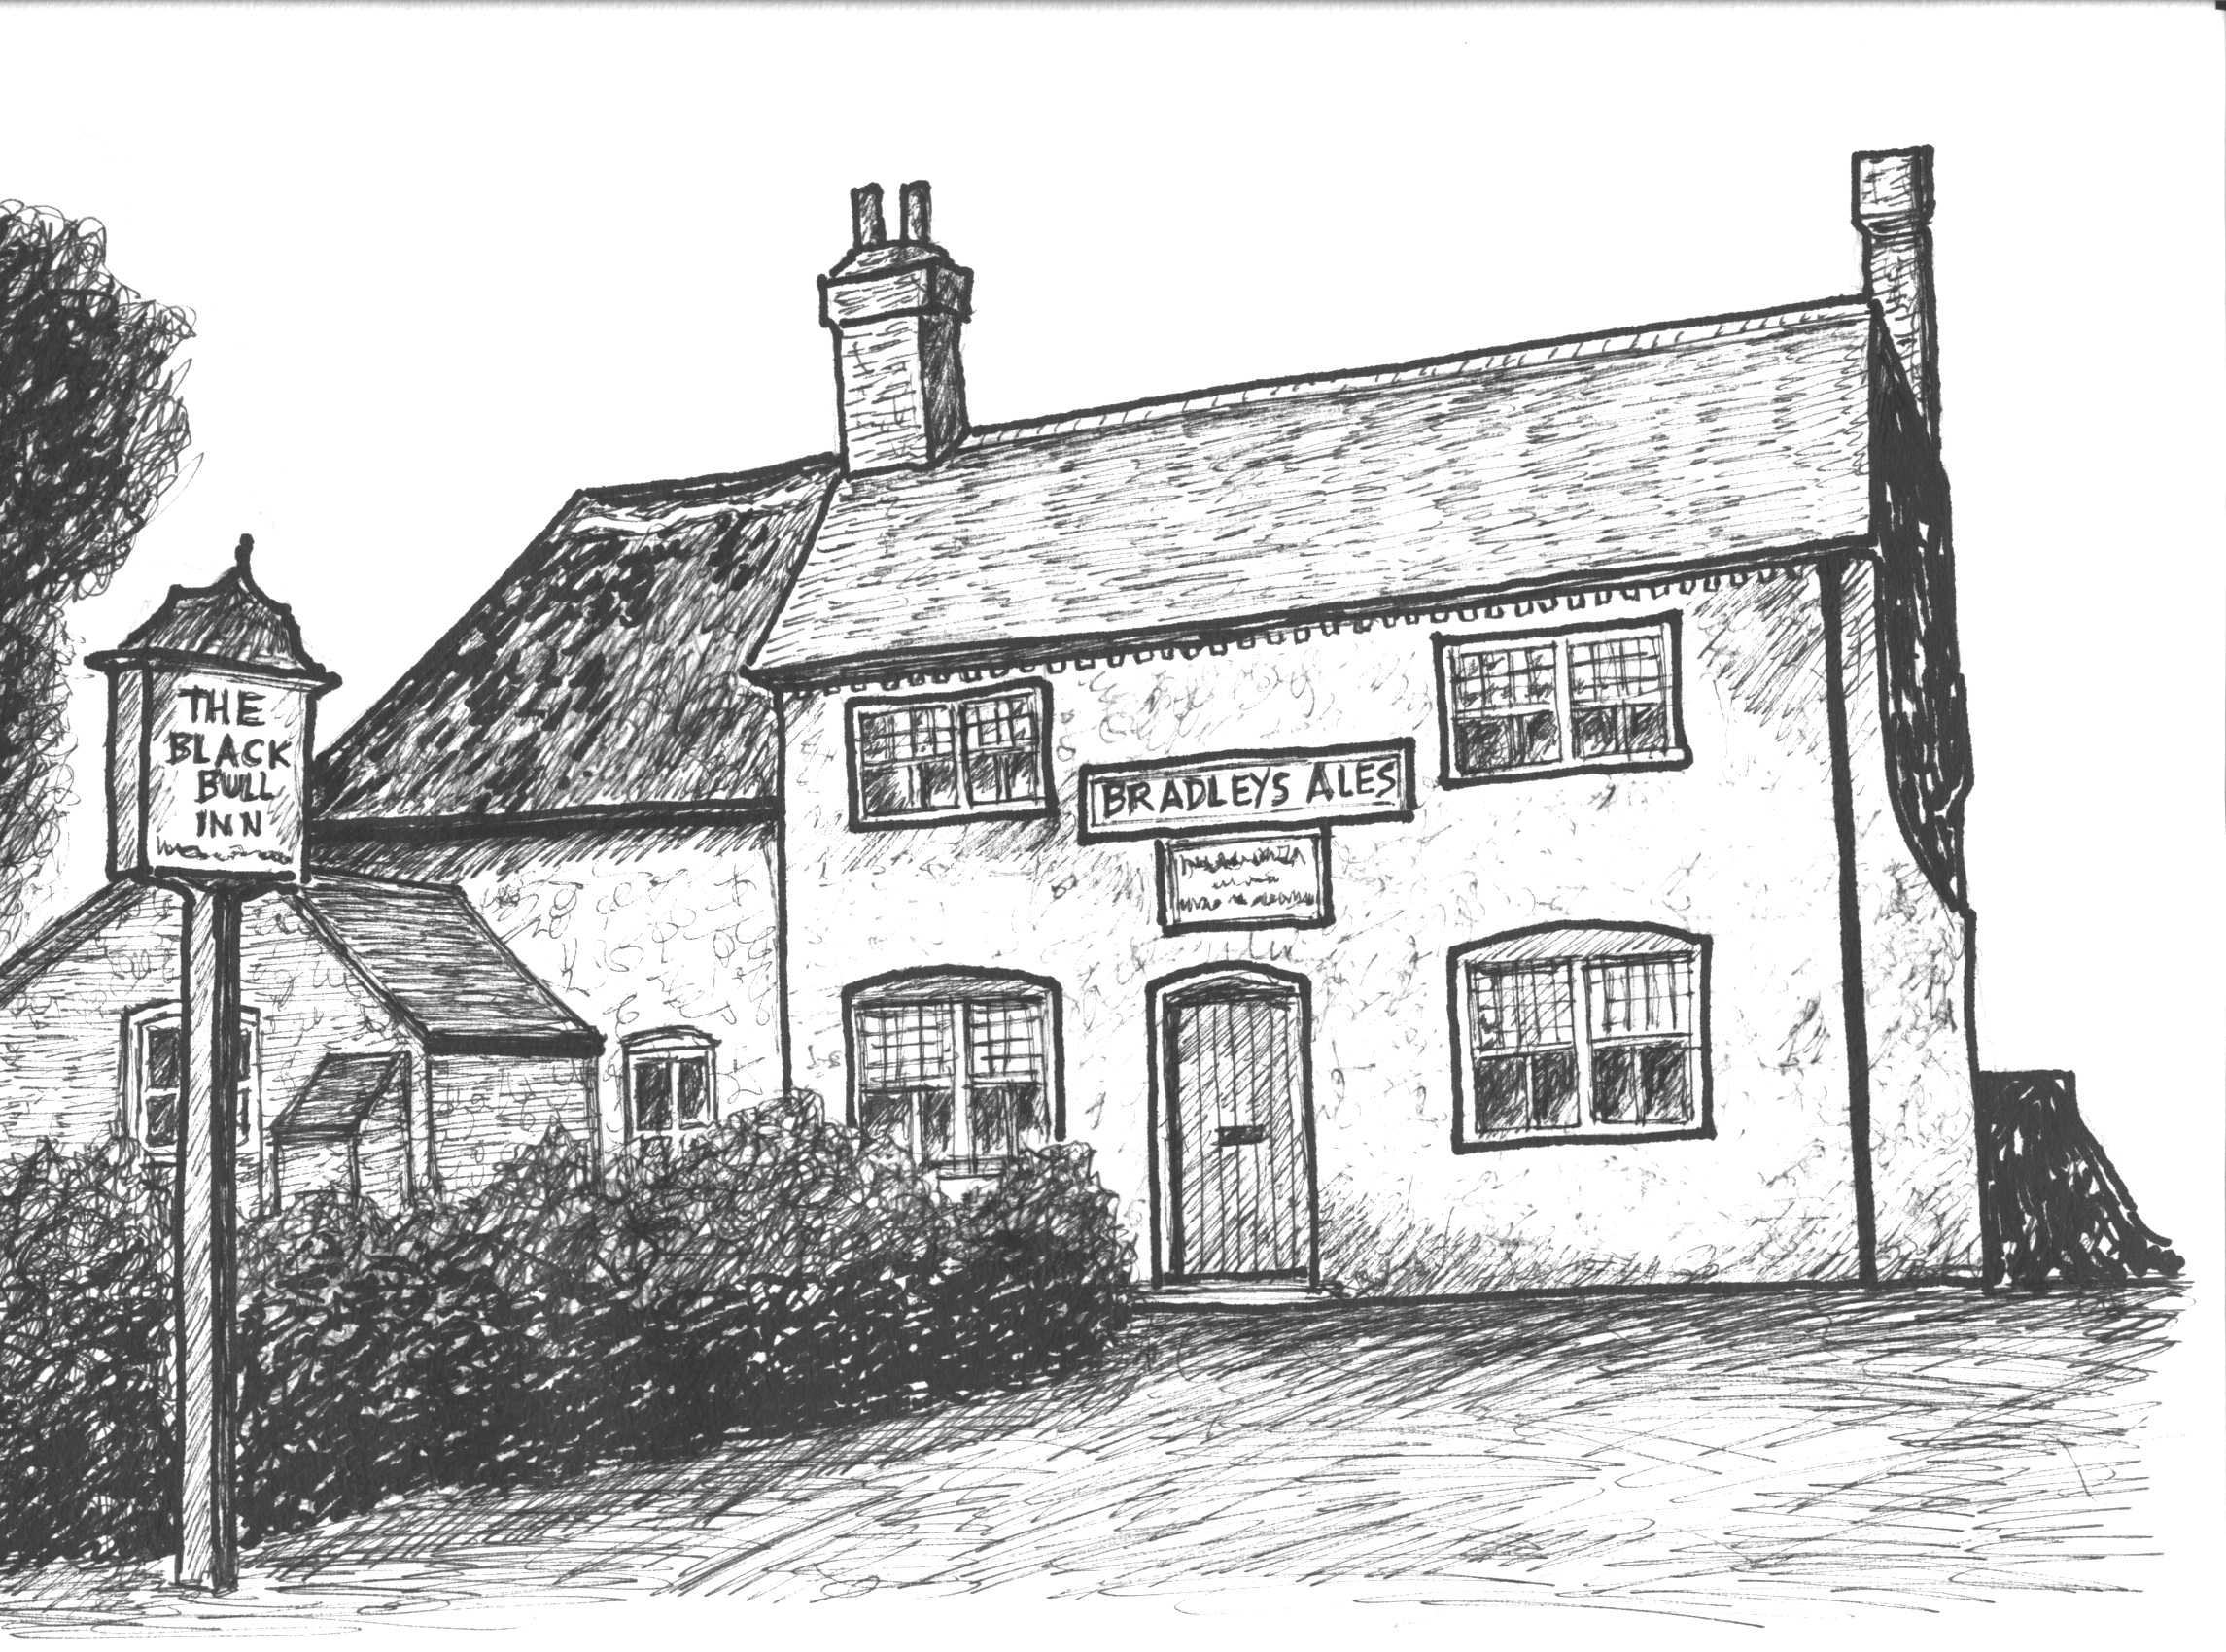 Illustration from A Brief History of Newthorpe by J M Lee: The Black Bull Inn, Newthorpe, Nottinghamshire